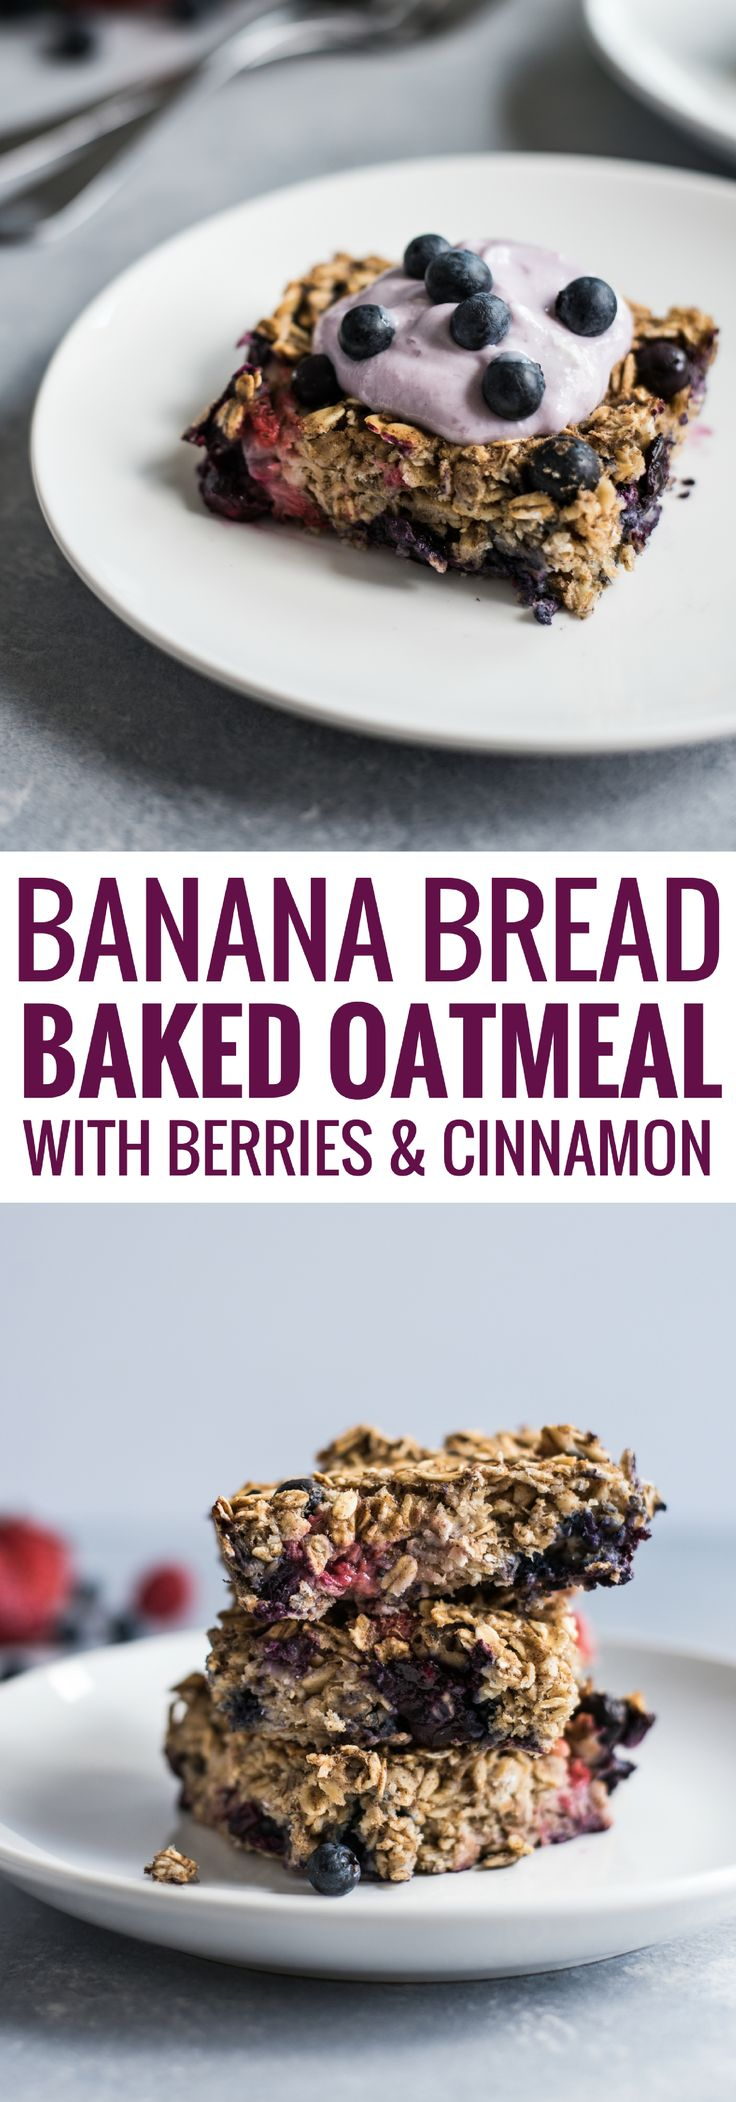 A healthy Banana Bread Baked Oatmeal recipe made with berries and cinnamon to start your morning off on the right foot! (gluten free + vegetarian)